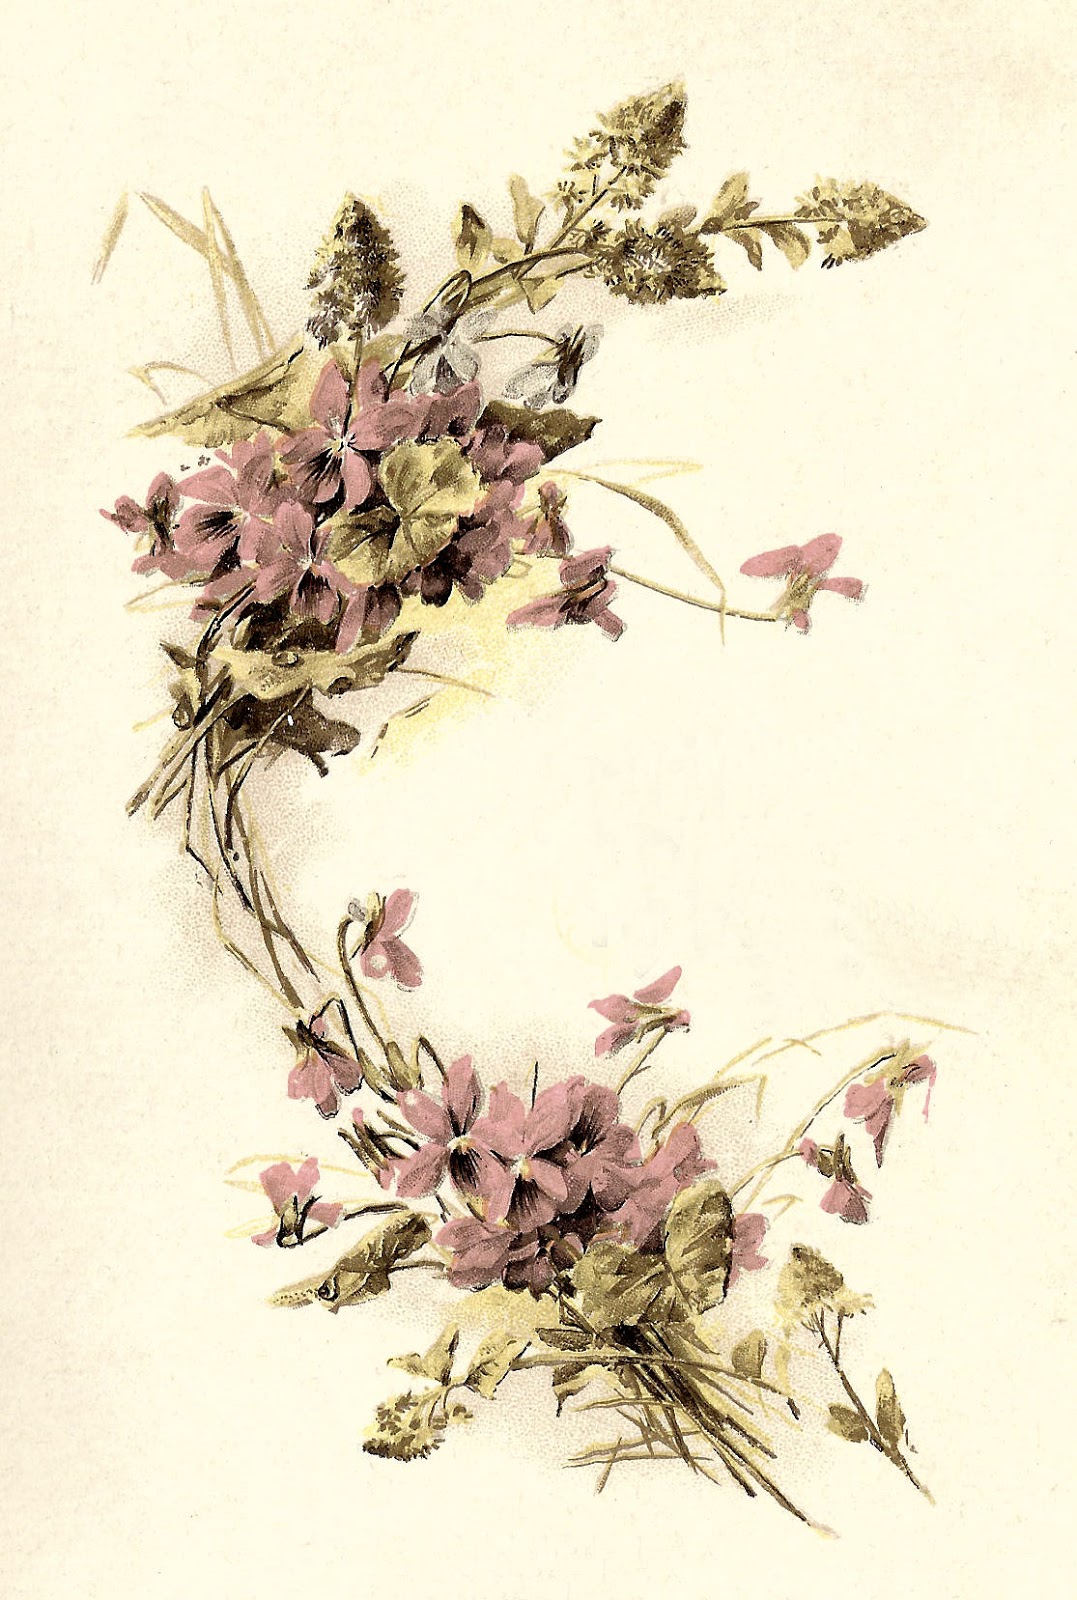 Antique Images Free Flower Graphic Vintage Forget Me Not Flower Clip Art On Book Cover